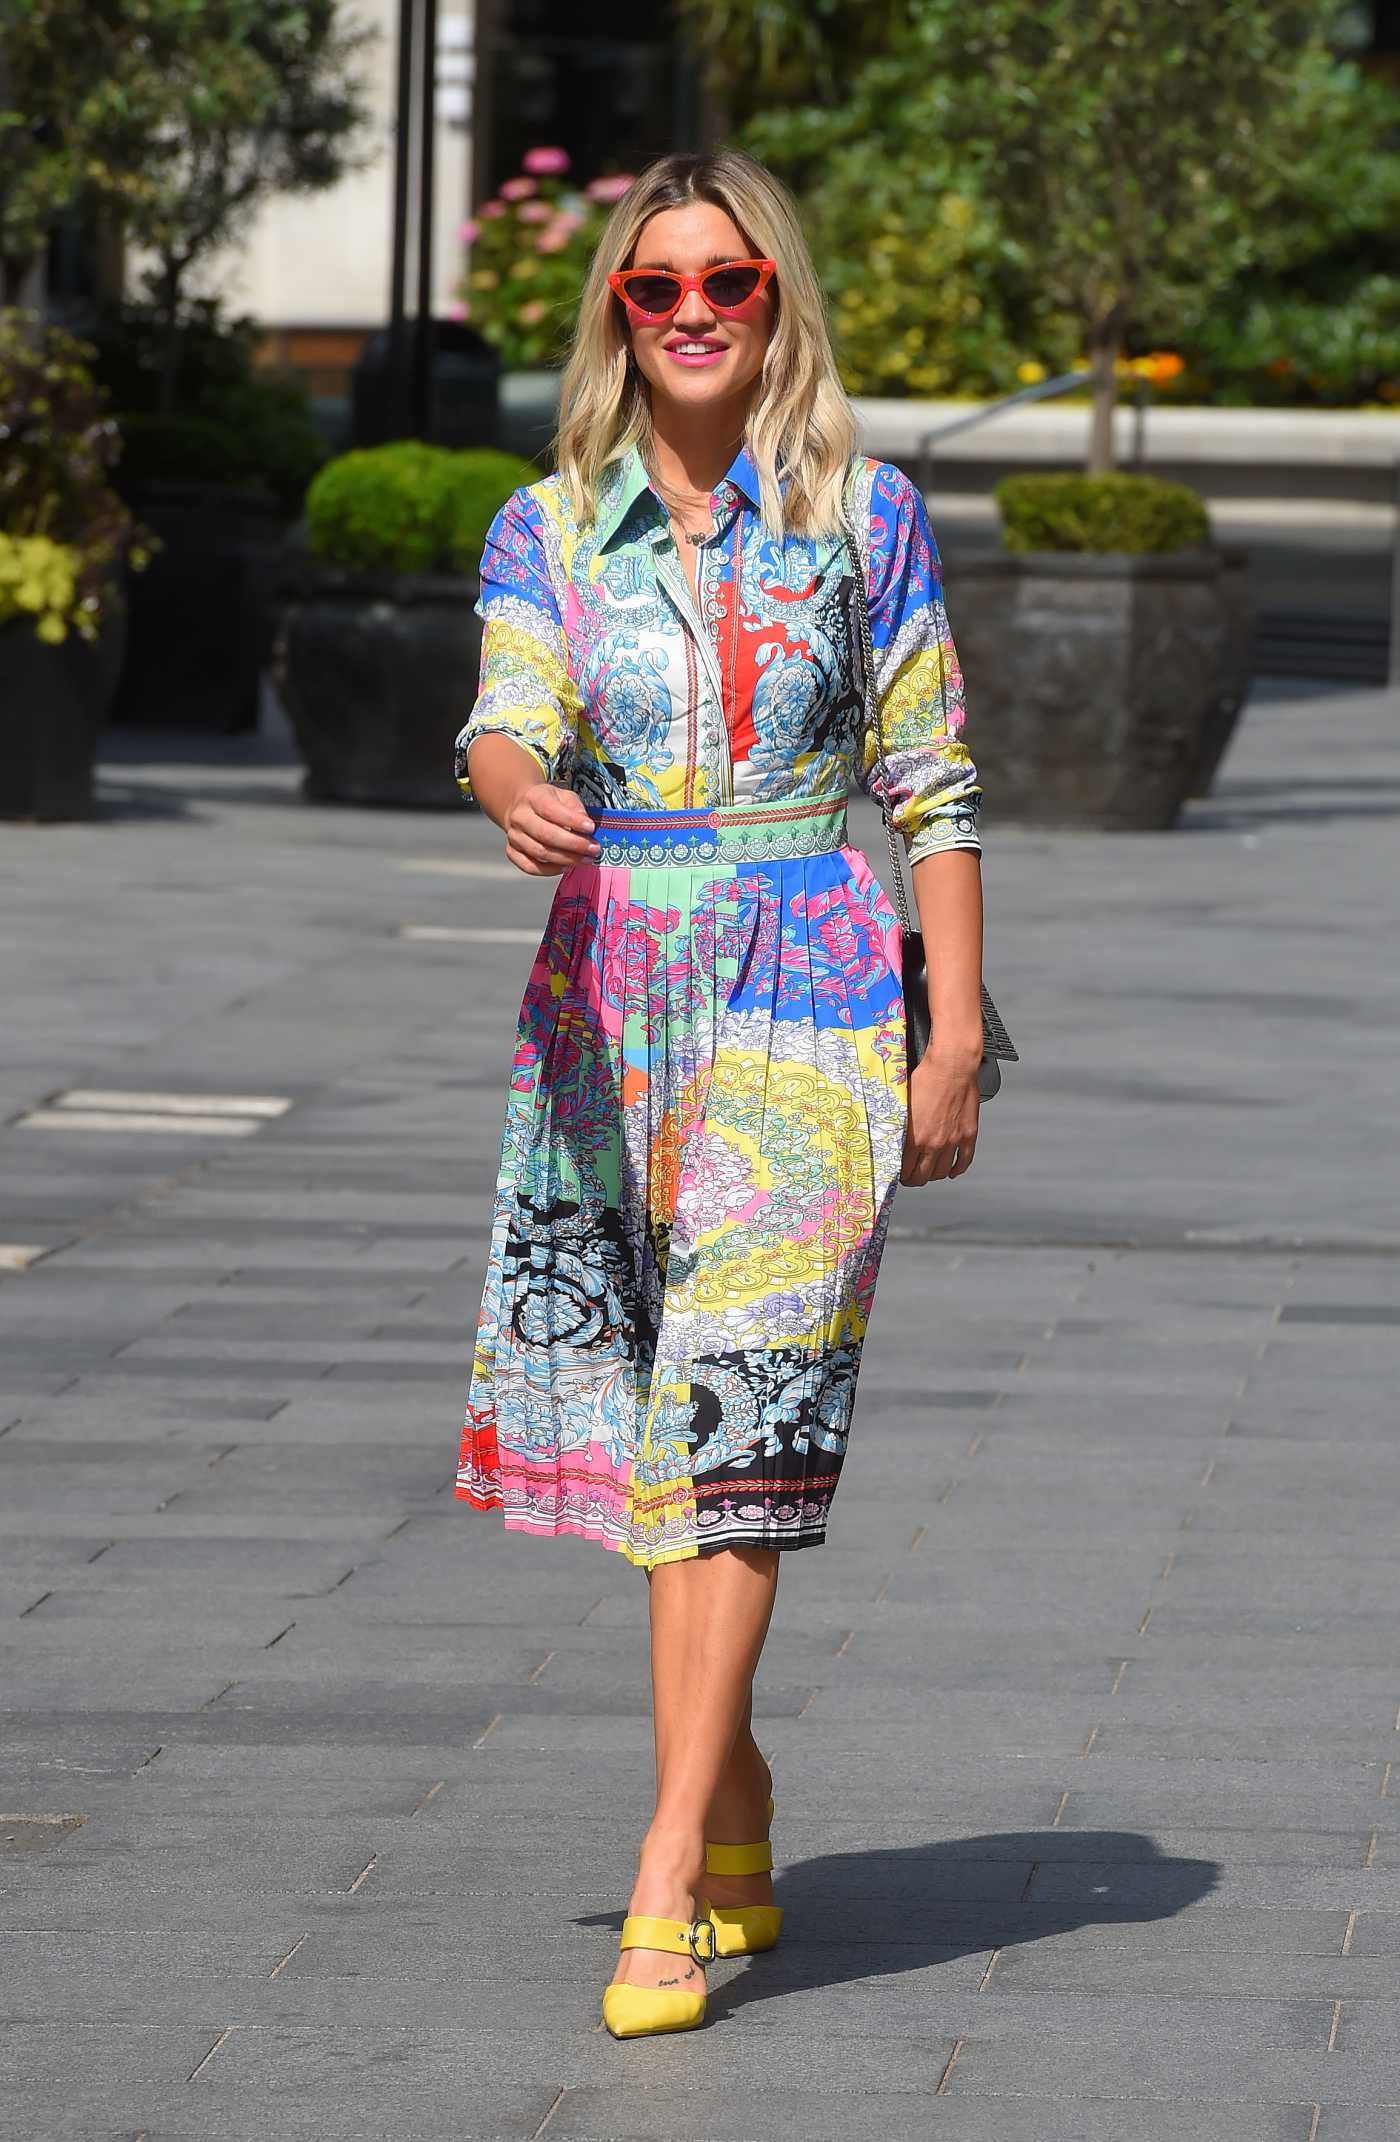 Ashley Roberts in a Colorful Dress Leaves the Global Radio Studios in London 06/09/2020